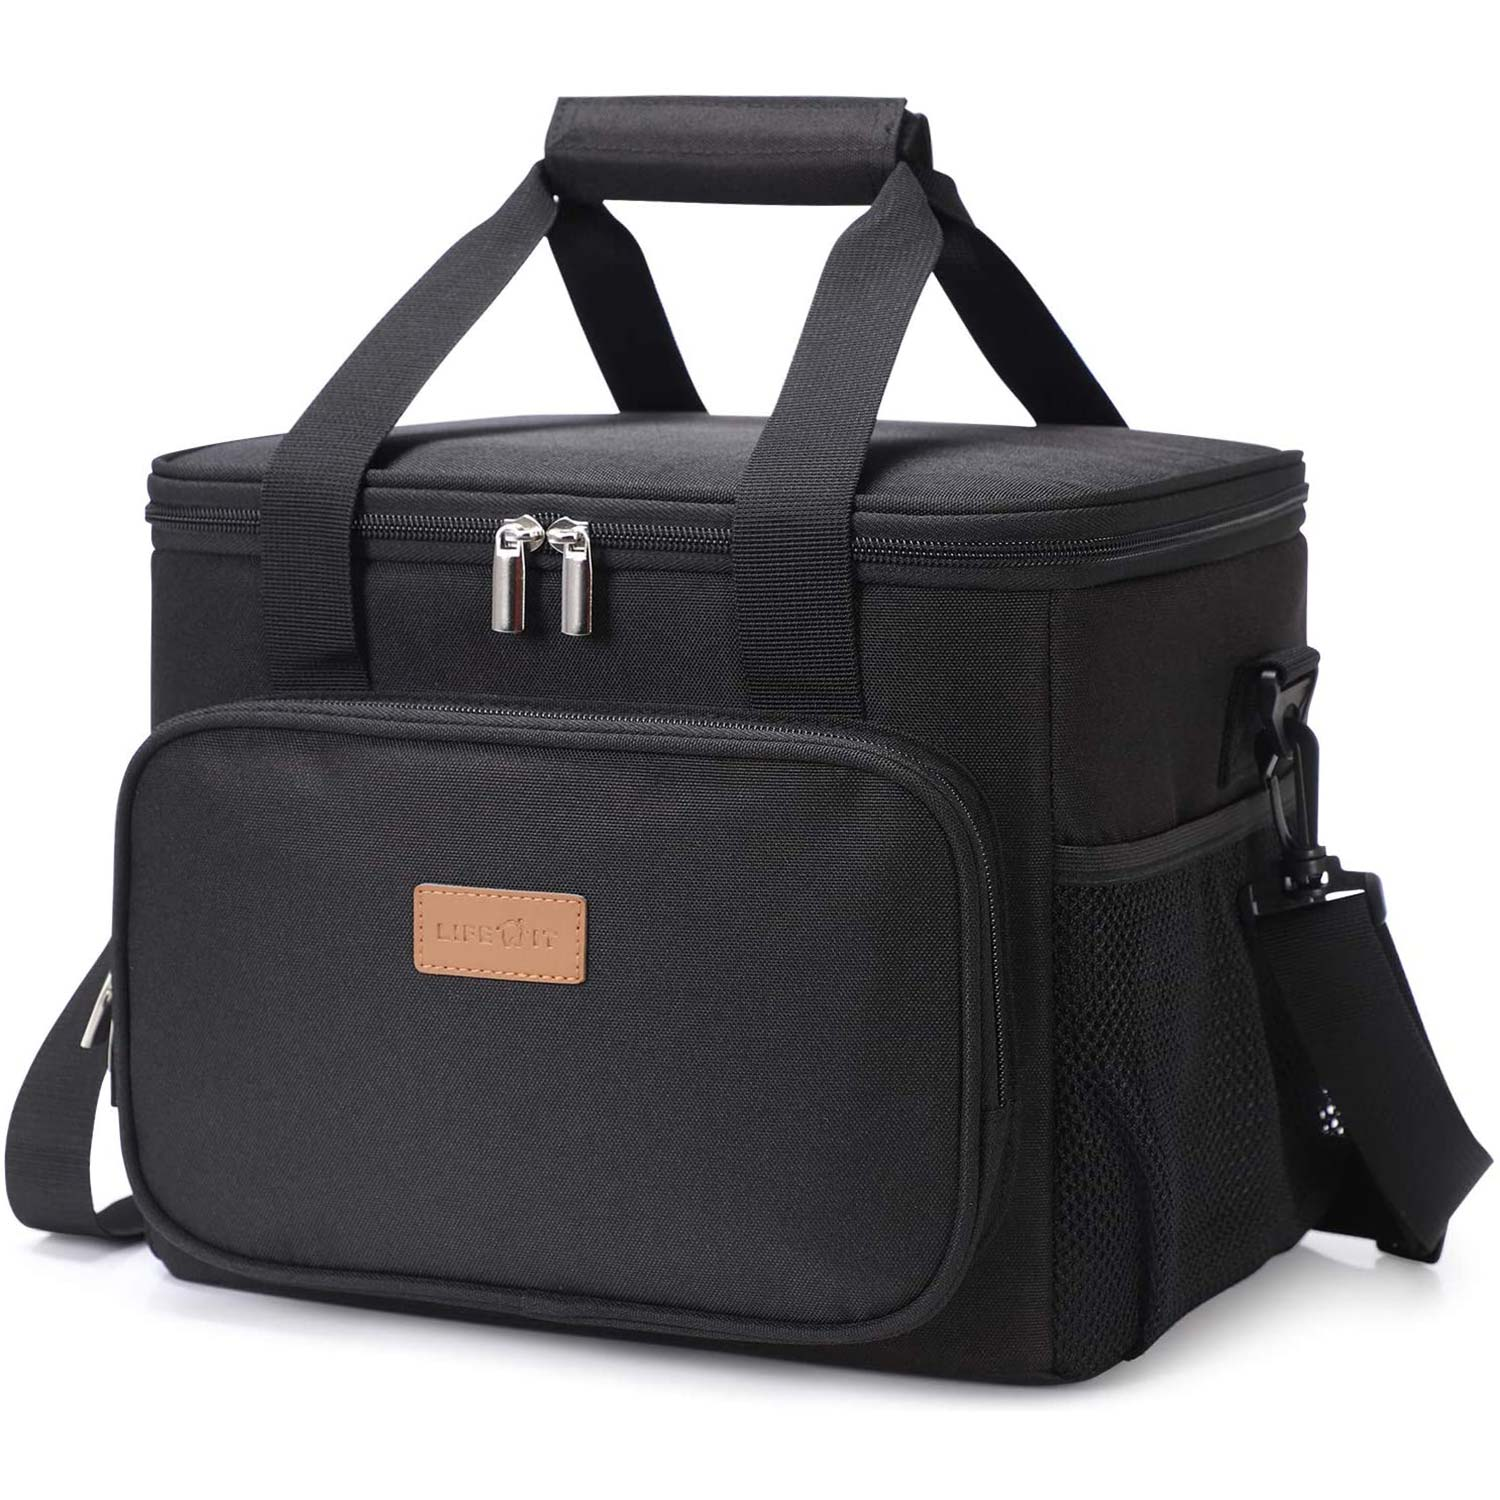 Lifewit Large Lunch Bag 24-Can